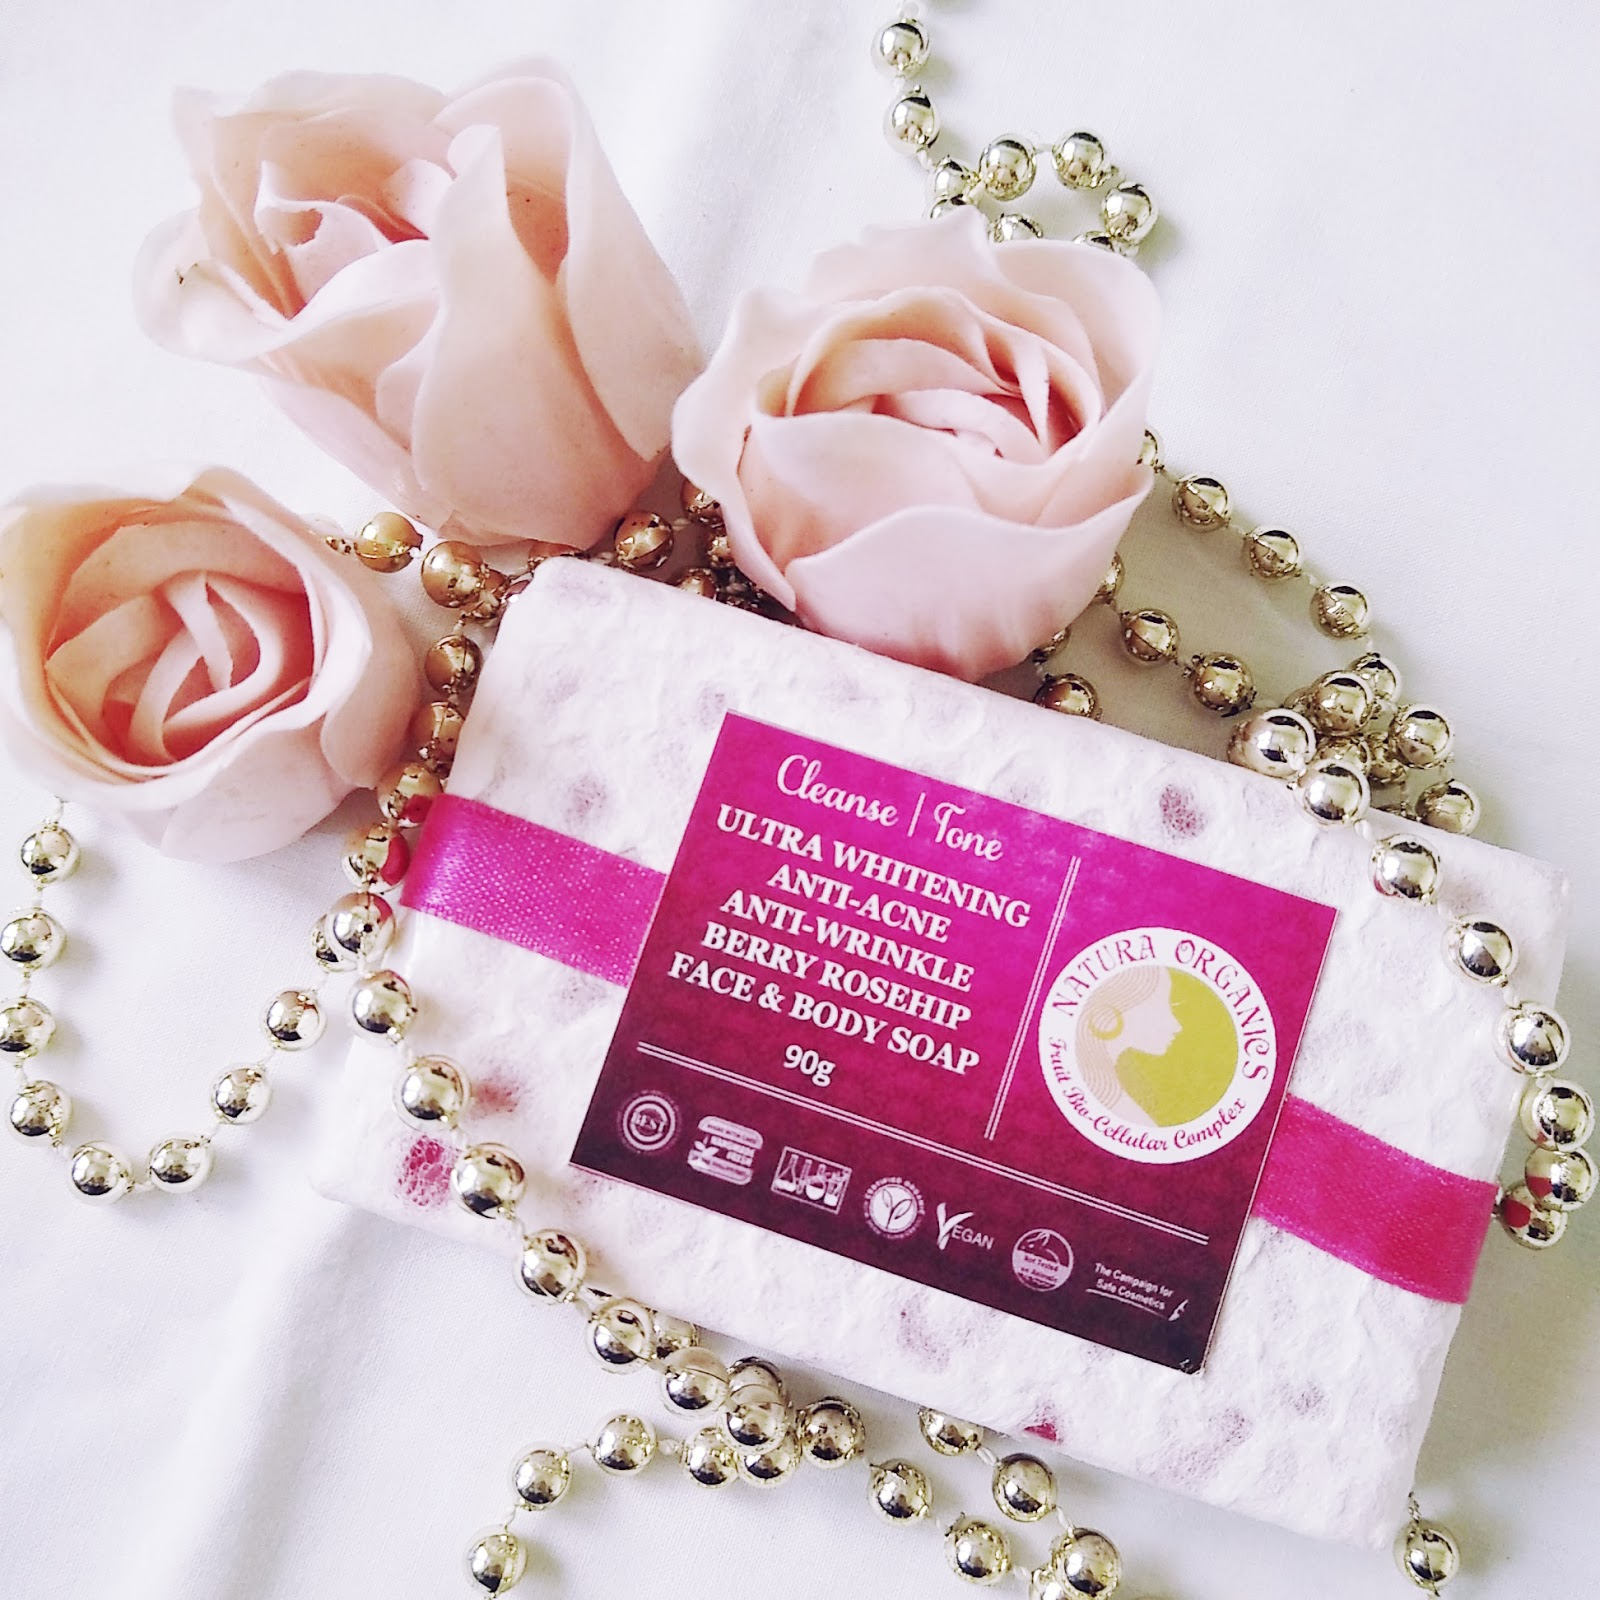 Berry Rosehip face and body soap from Natura Organics - THE BEAUTY ...